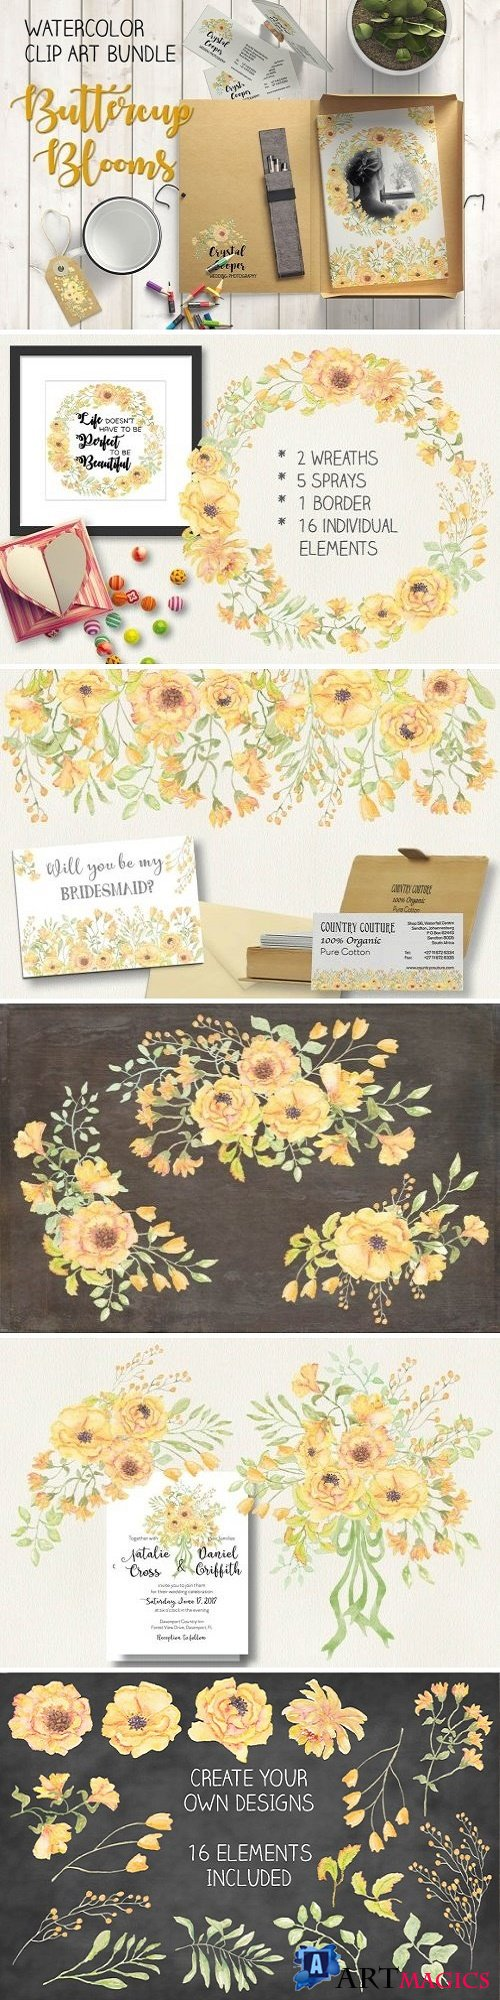 Watercolor bundle: Buttercup blooms - 1581184